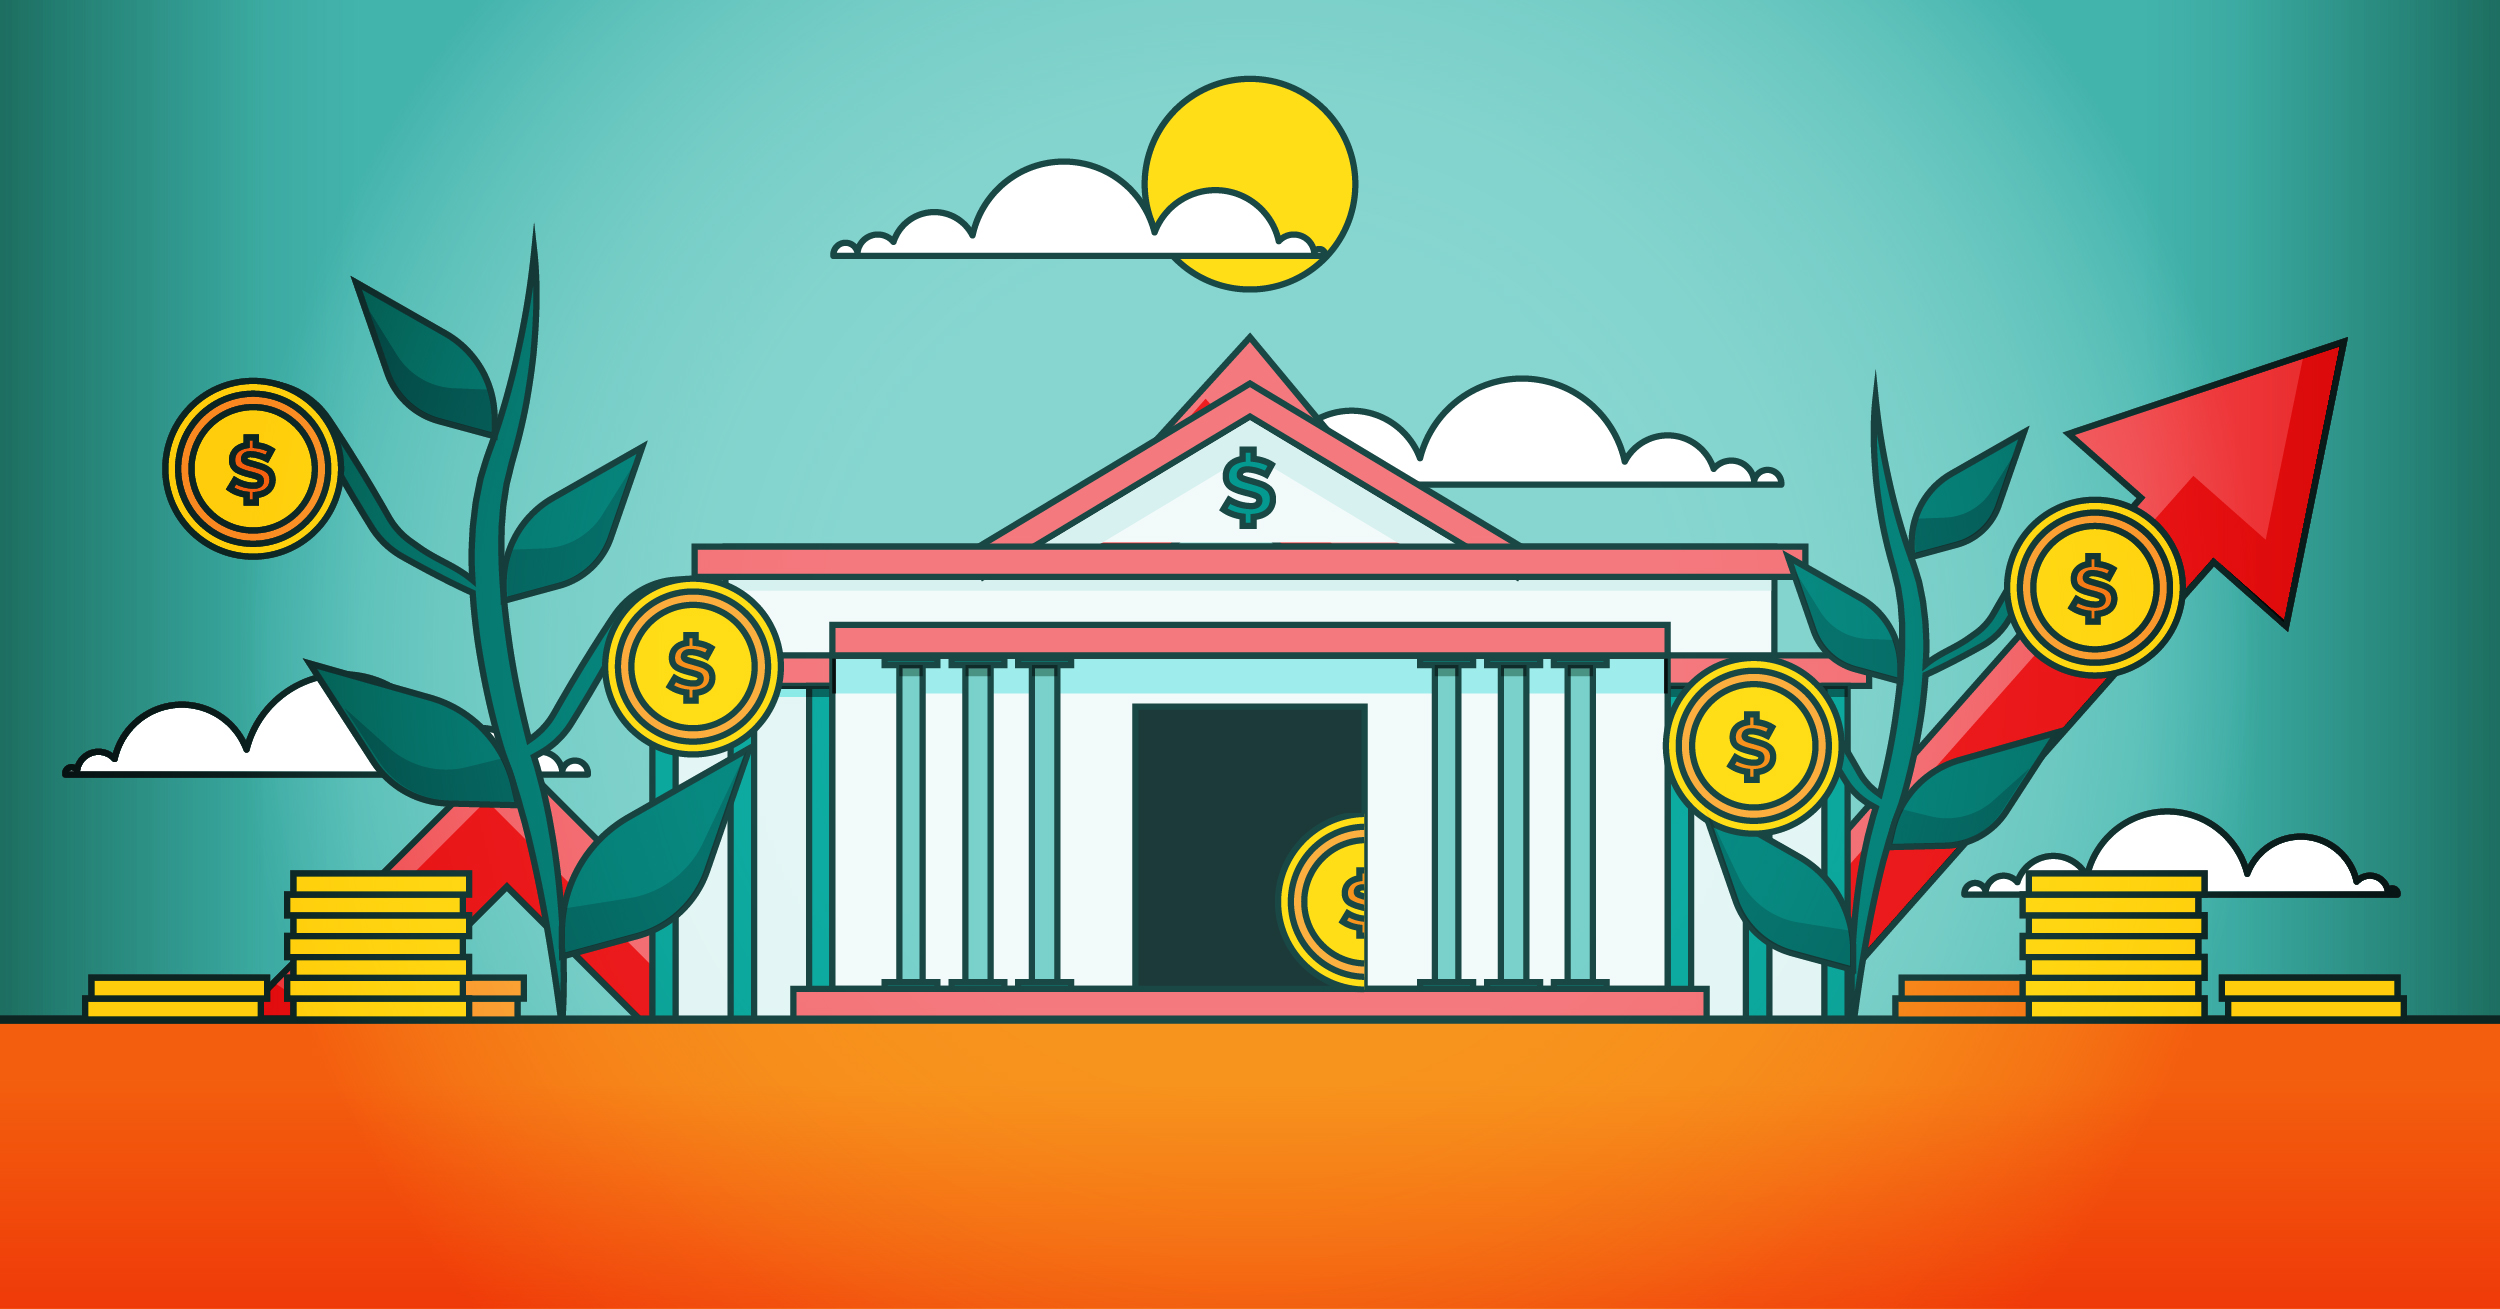 A bank with many coins surrounding it.